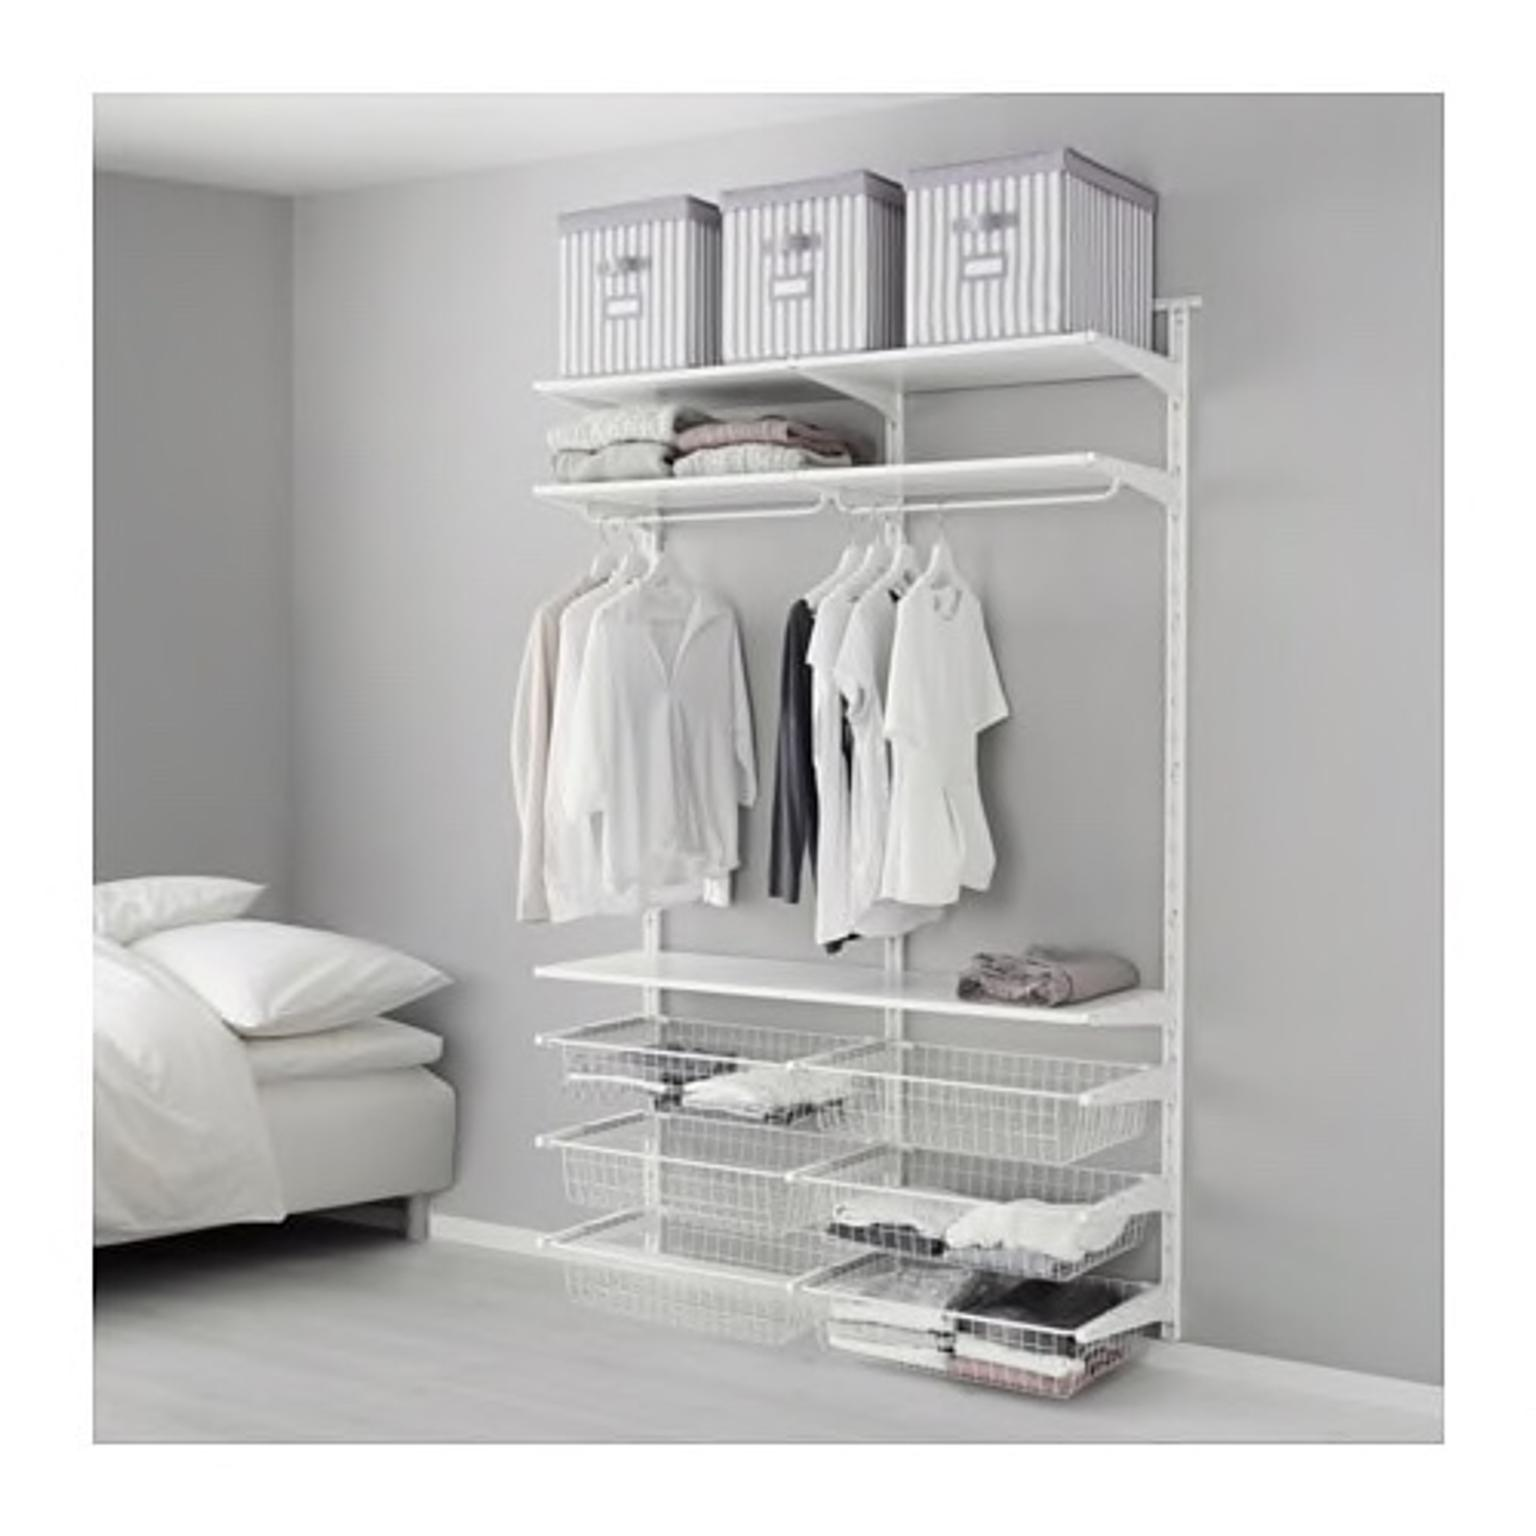 Ikea Algot Schrank In 63075 Offenbach Am Main For 110 00 For Sale